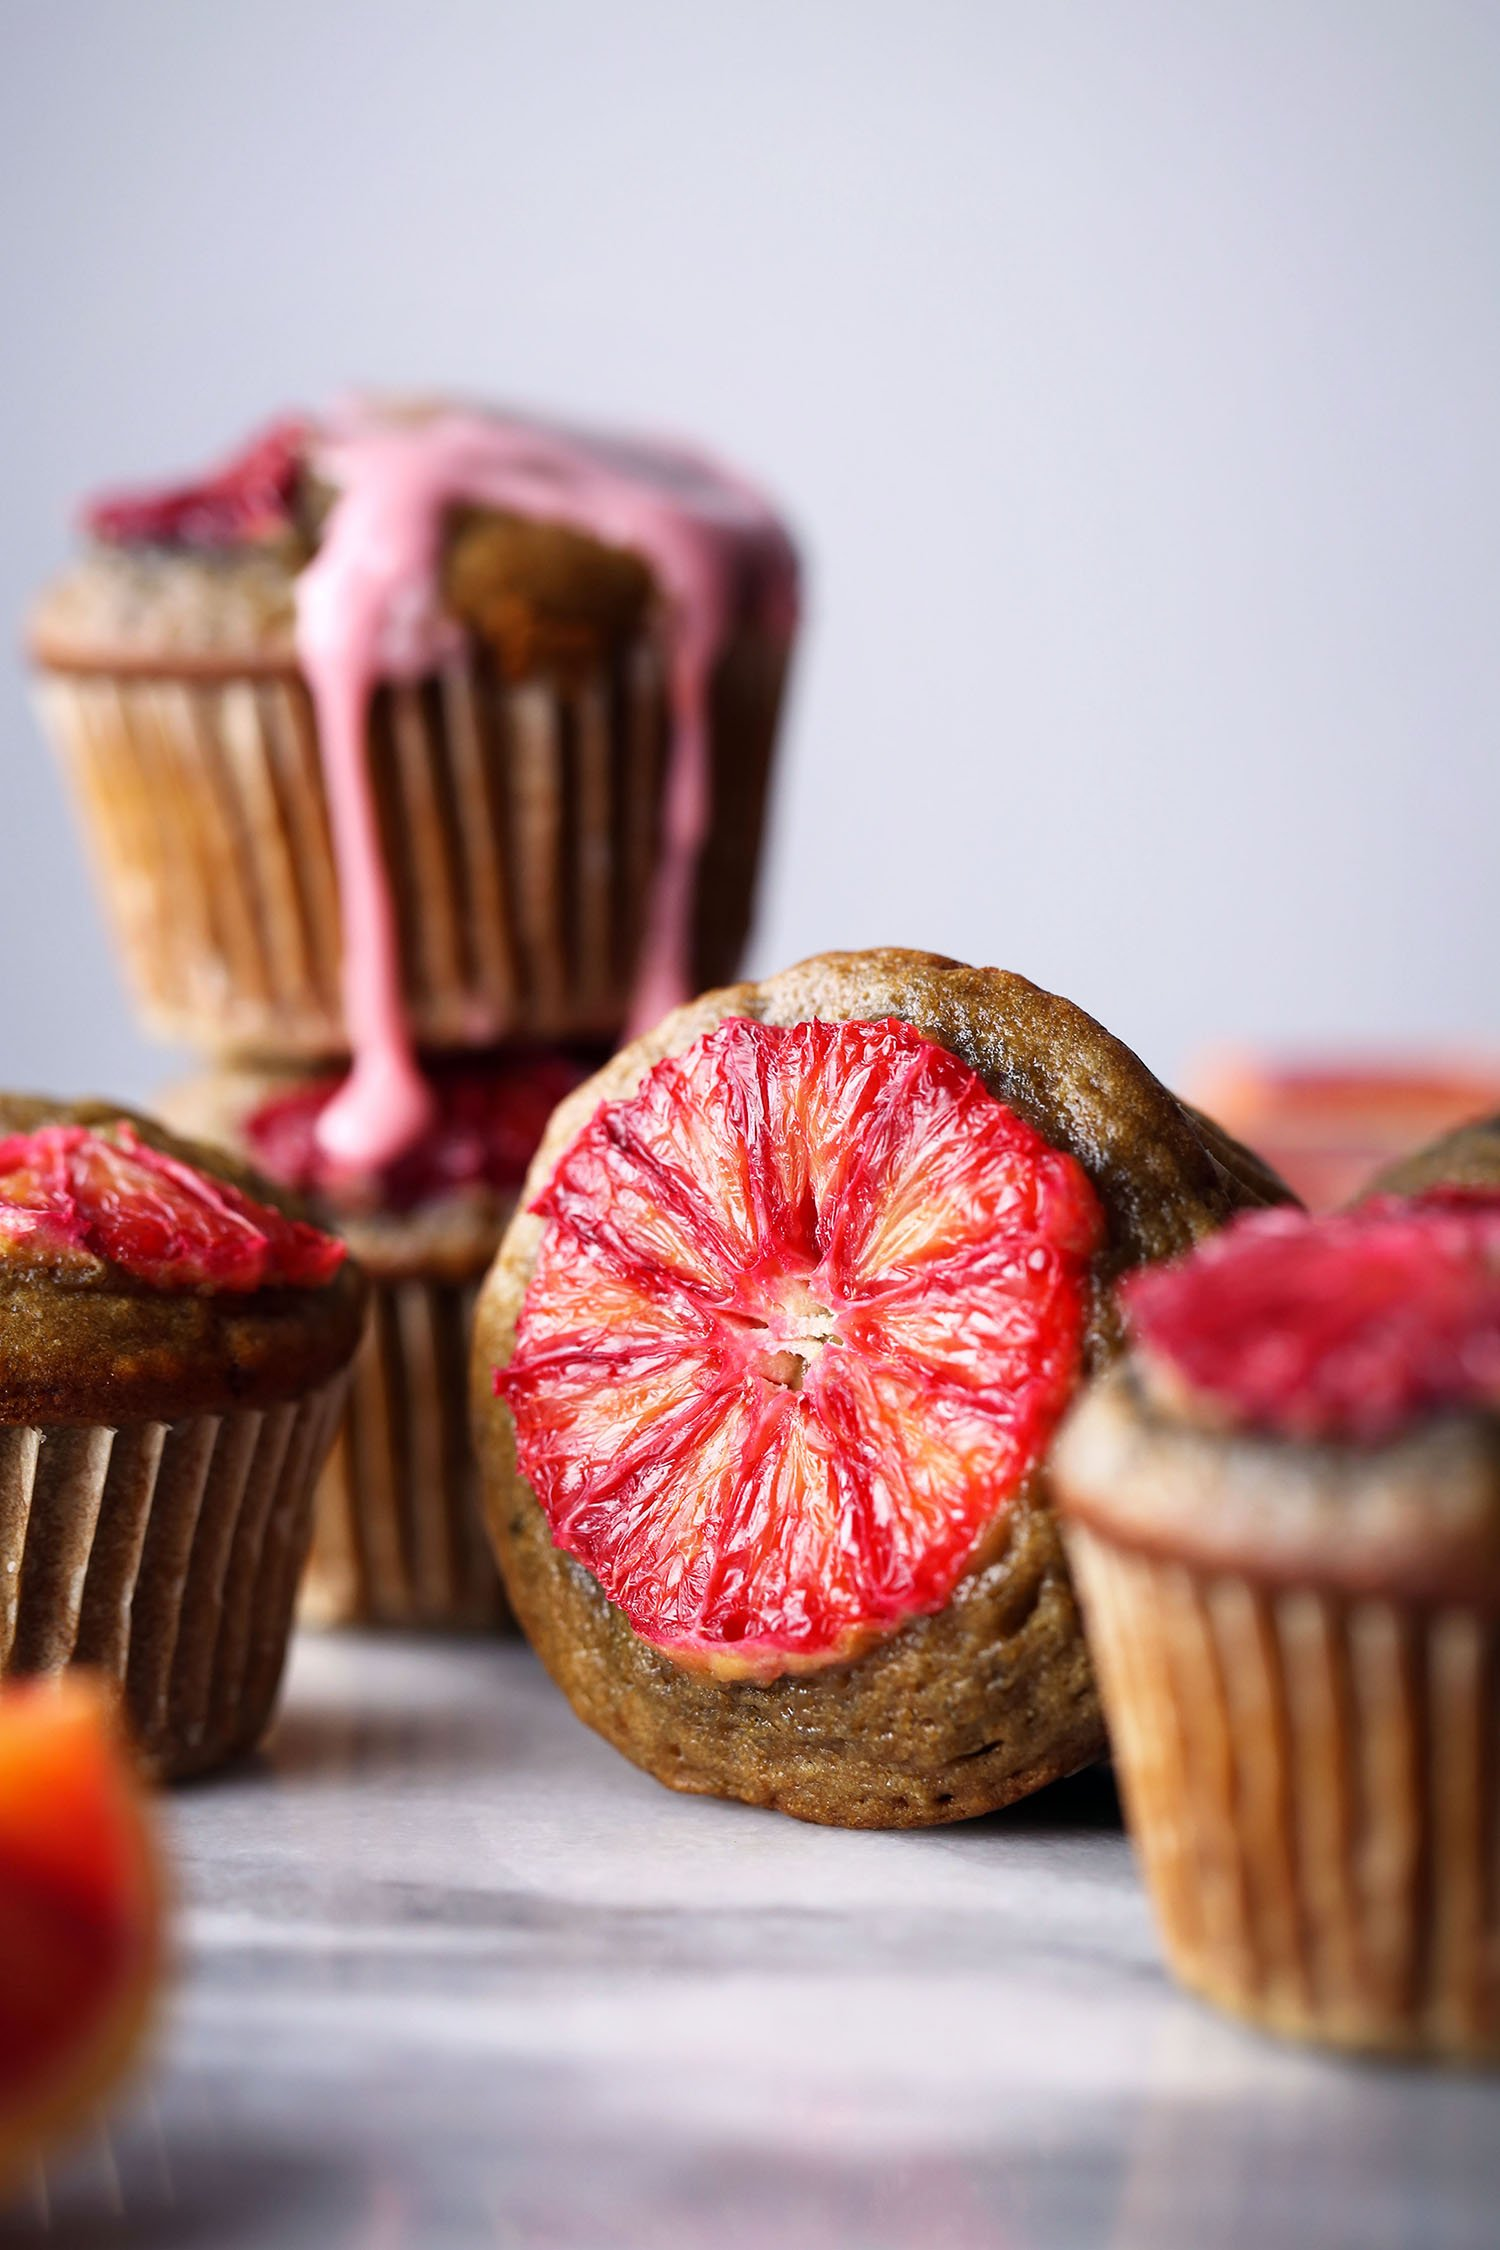 Blood Orange Spelt Muffins | Free of gluten, dairy, eggs, and refined sugar | Vegan friendly